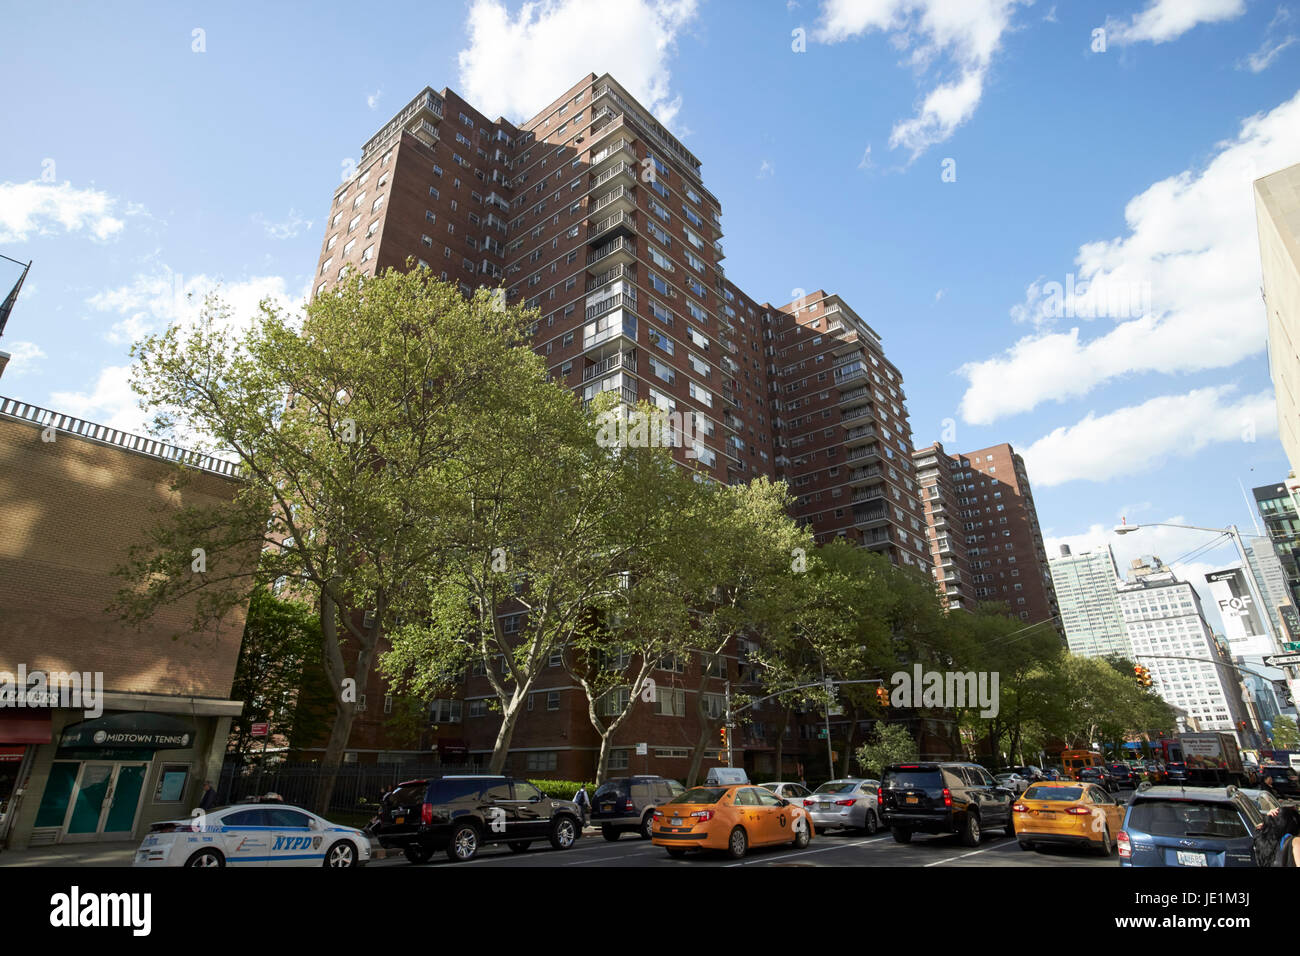 penn south coops mutual redevelopment houses affordable housing blocks chelsea New York City USA - Stock Image